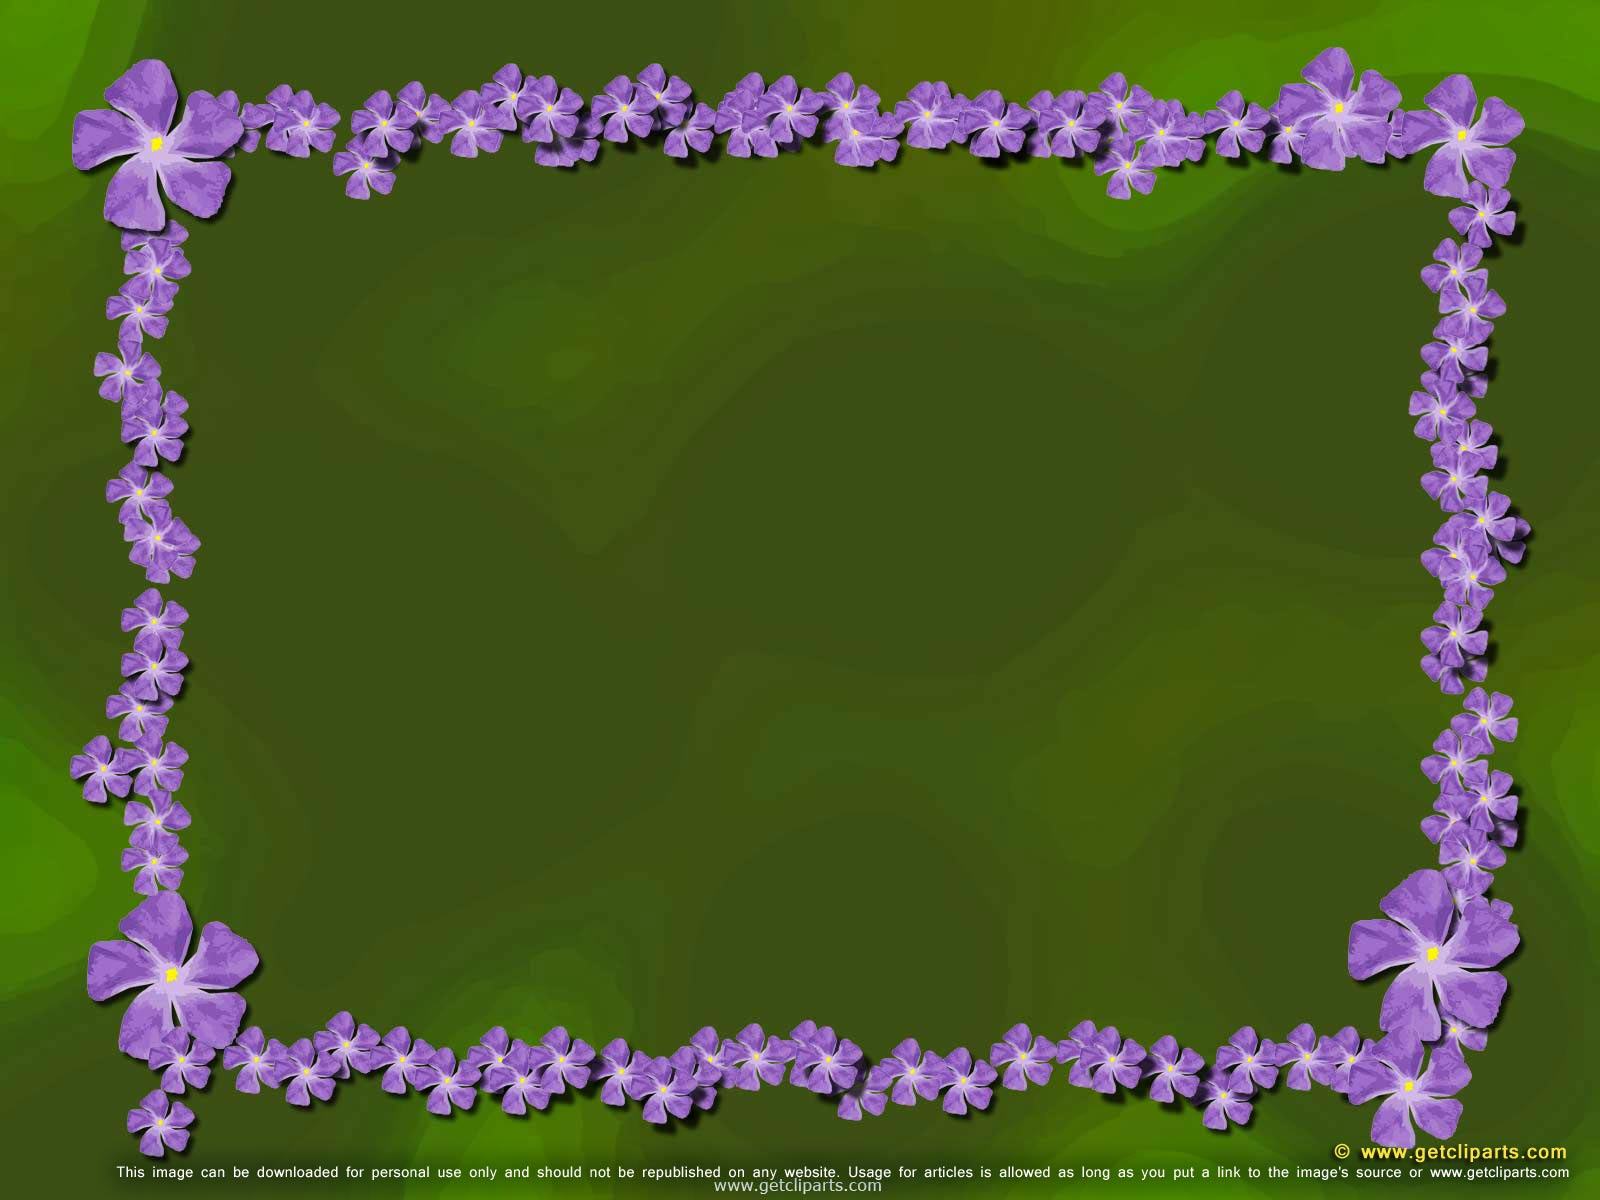 Free Desktop Wallpaper Purple Flowers Border On Garden Theme